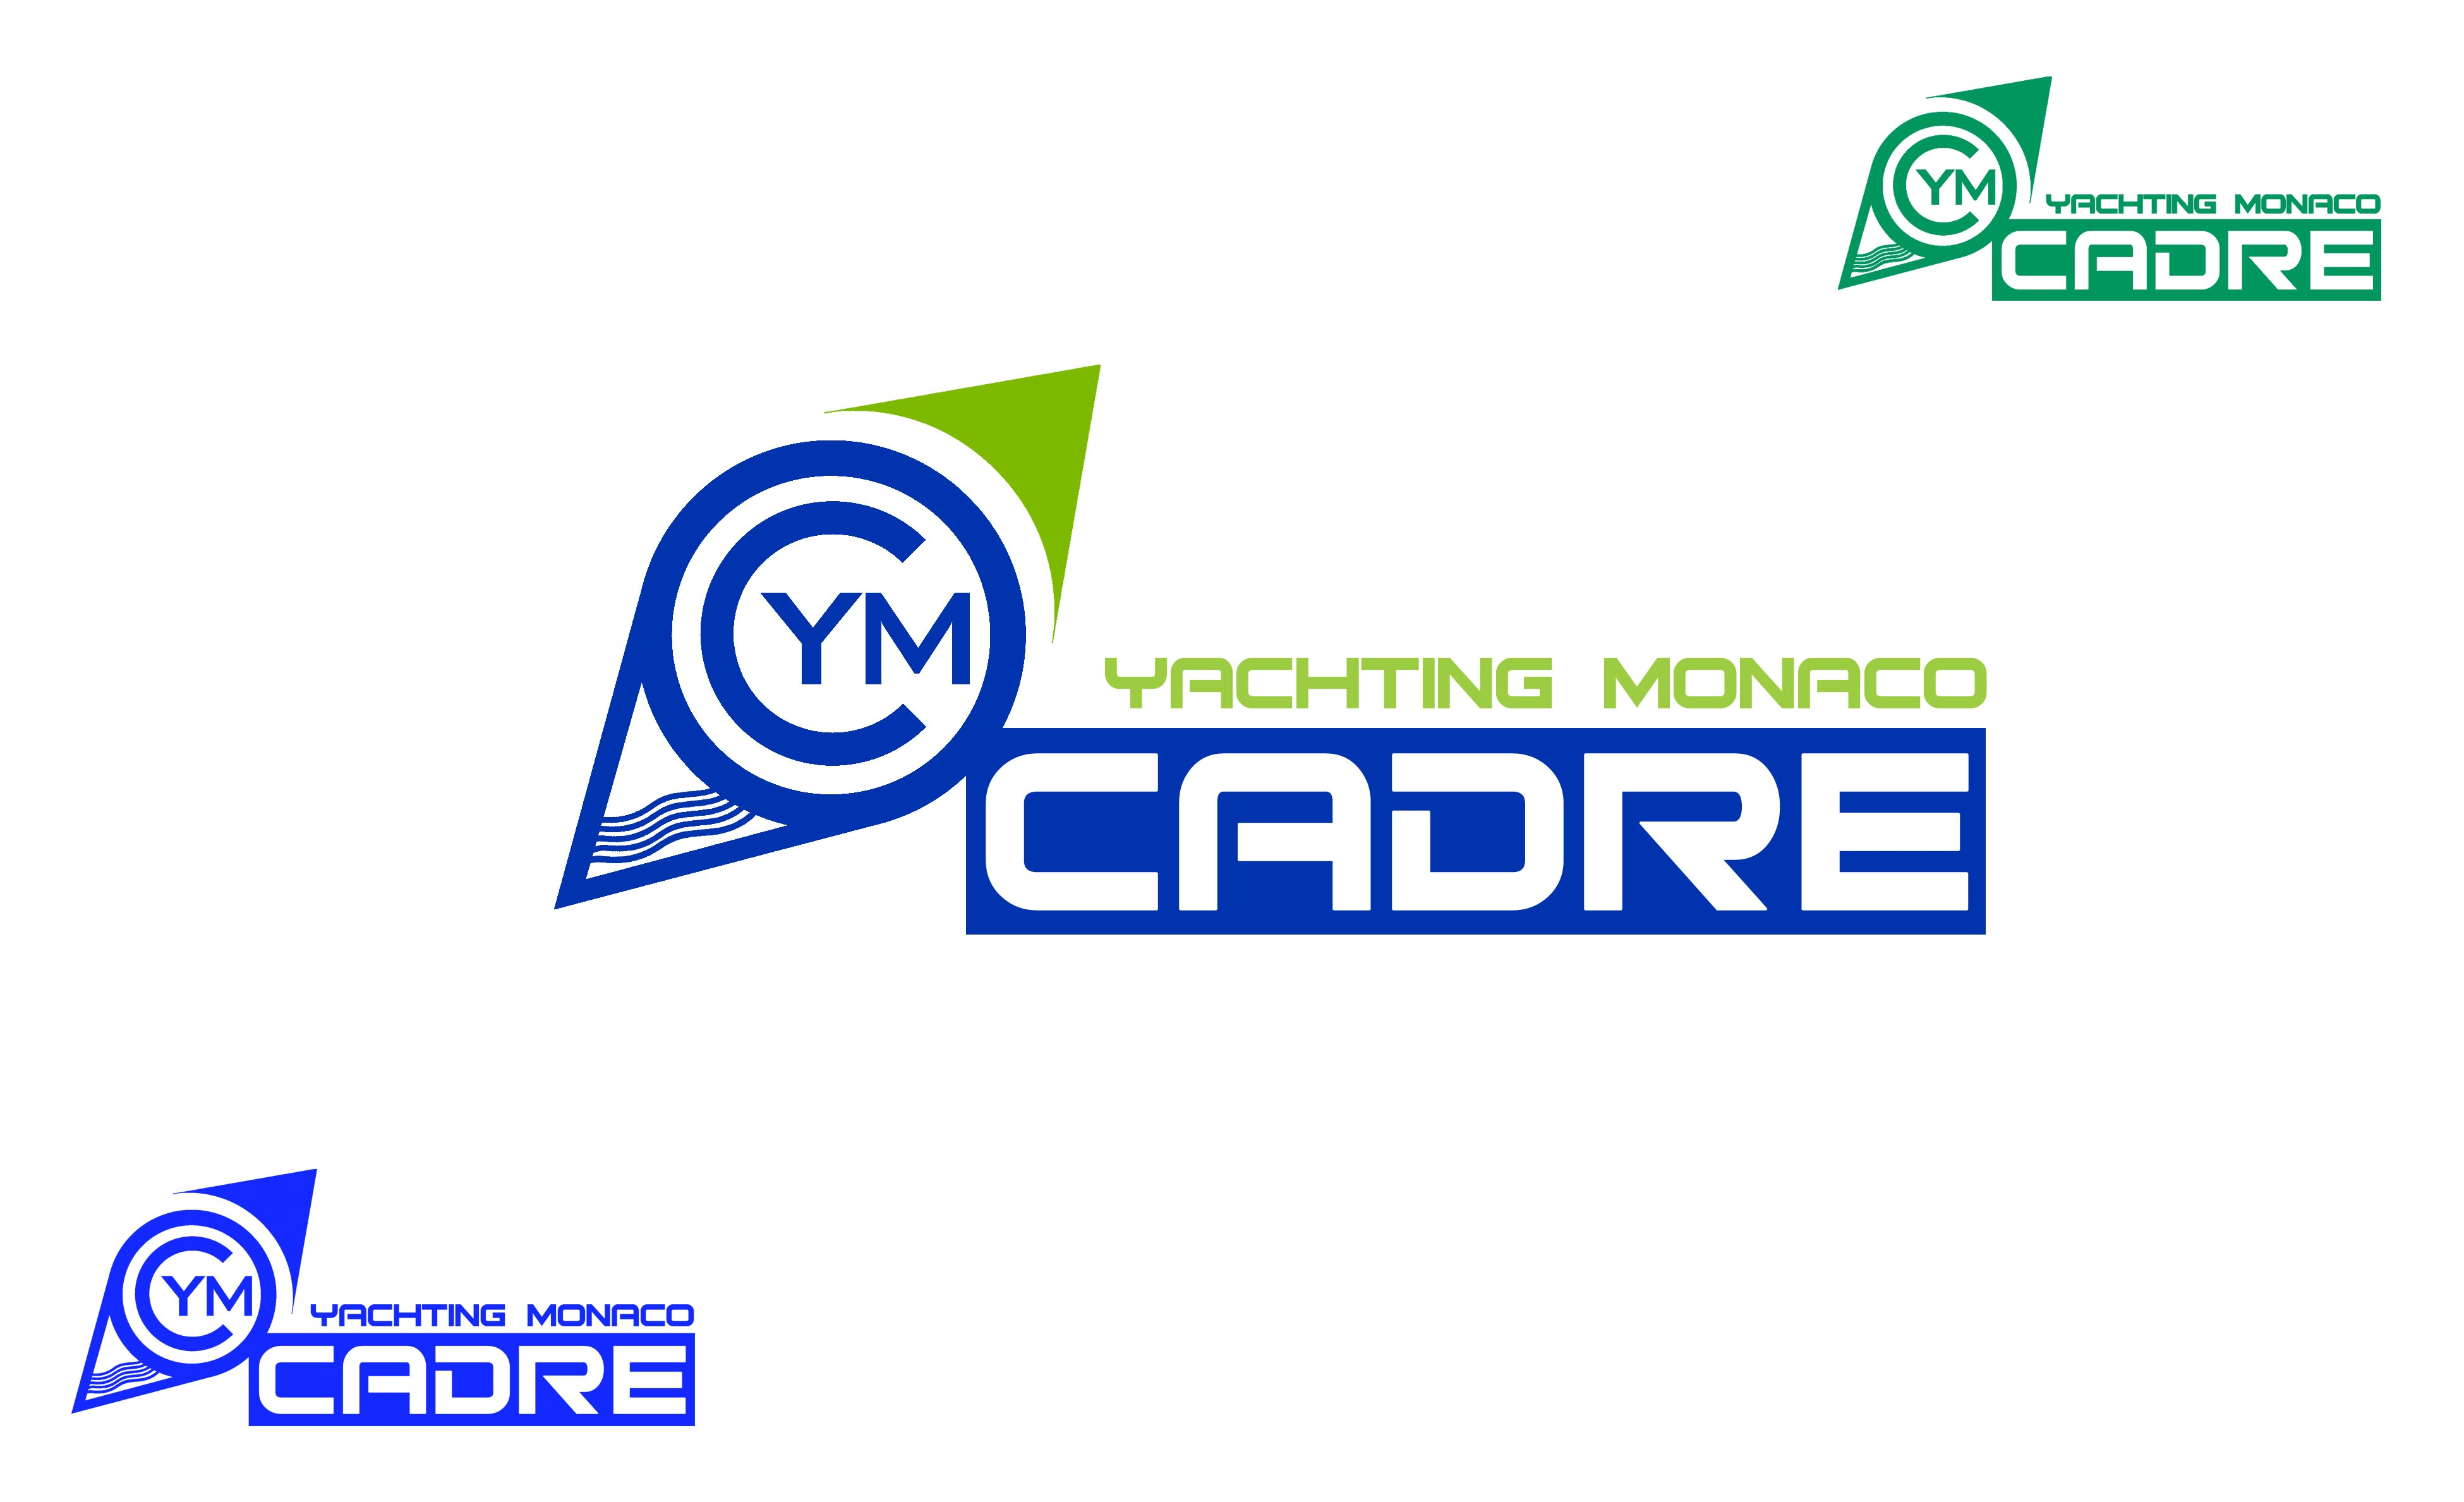 Logo Design by Cesar III Sotto - Entry No. 247 in the Logo Design Contest New Logo Design for Cadre Yachting Monaco.